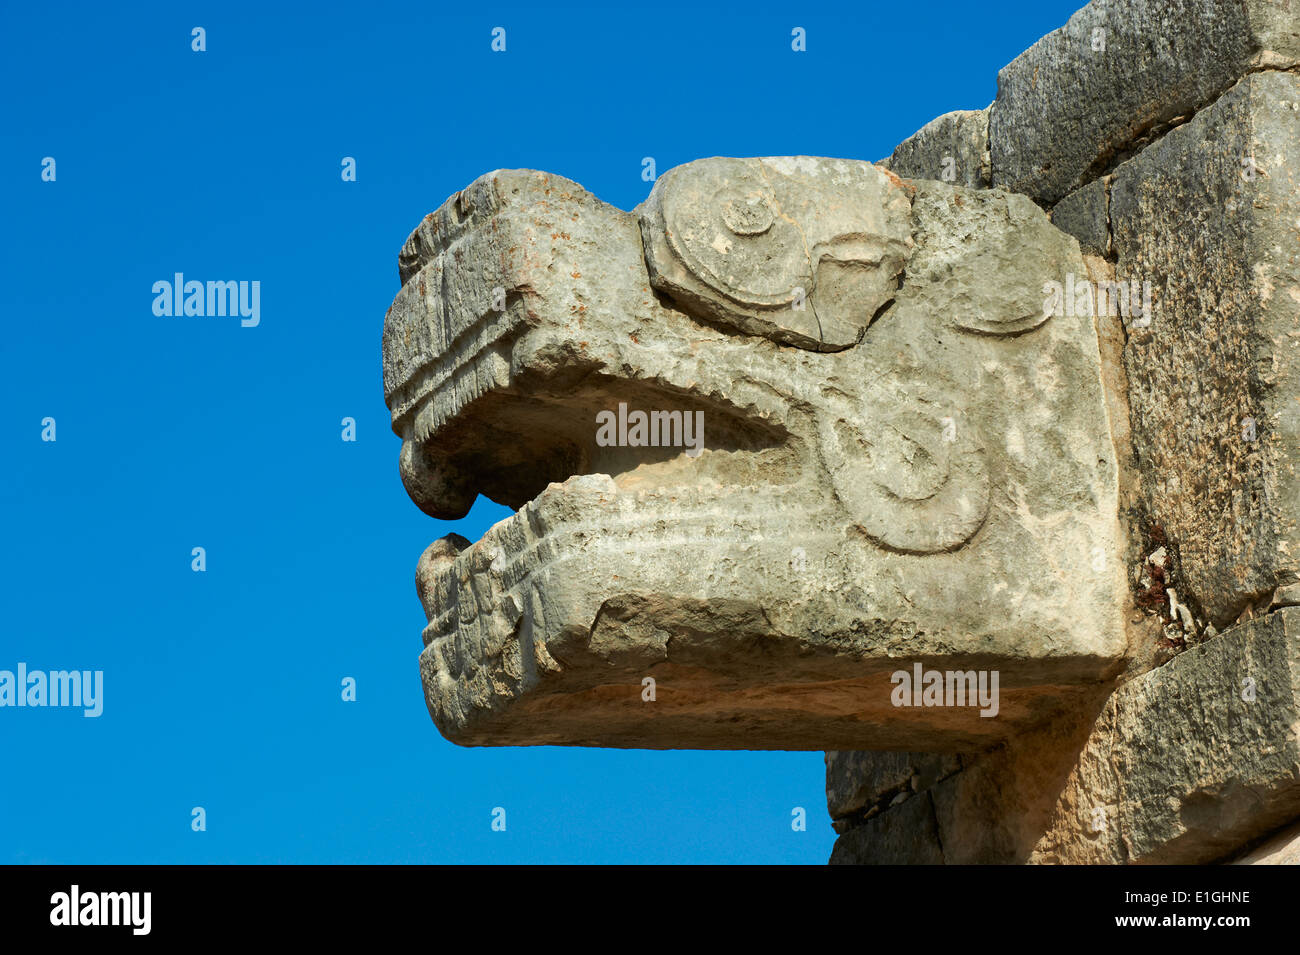 Mexico, Yucatan state, Chichen Itza archeological site, World heritage of UNESCO, the snake head, ancient mayan ruins - Stock Image